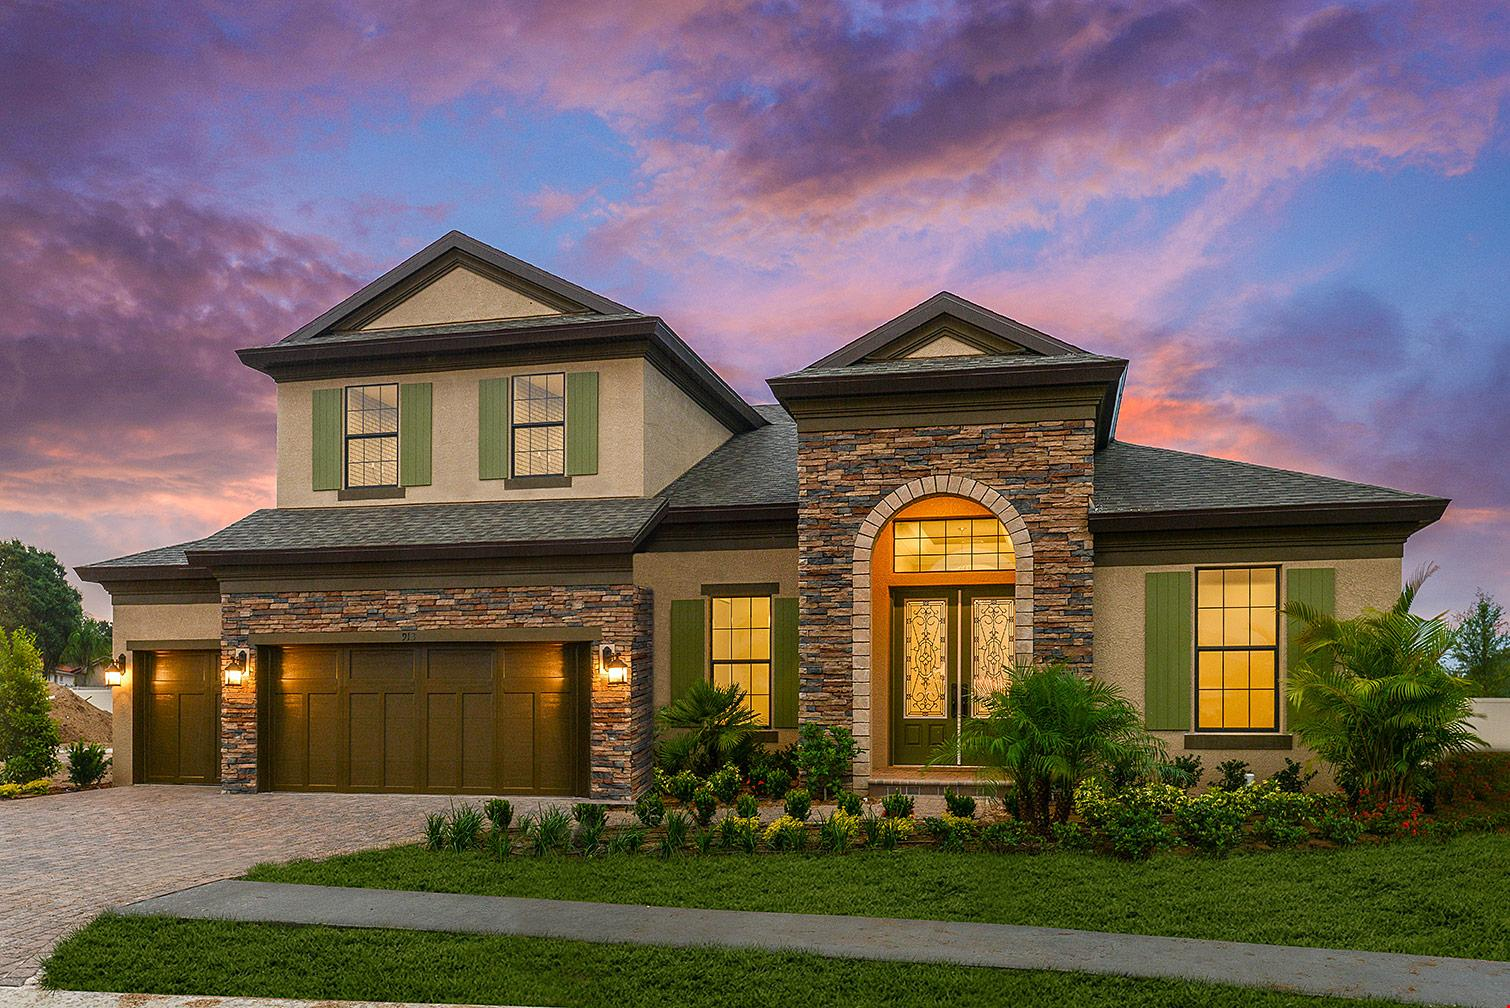 Homes by WestBay Riverview Florida Real Estate   Riverview Realtor   New Homes for Sale   Riverview Florida